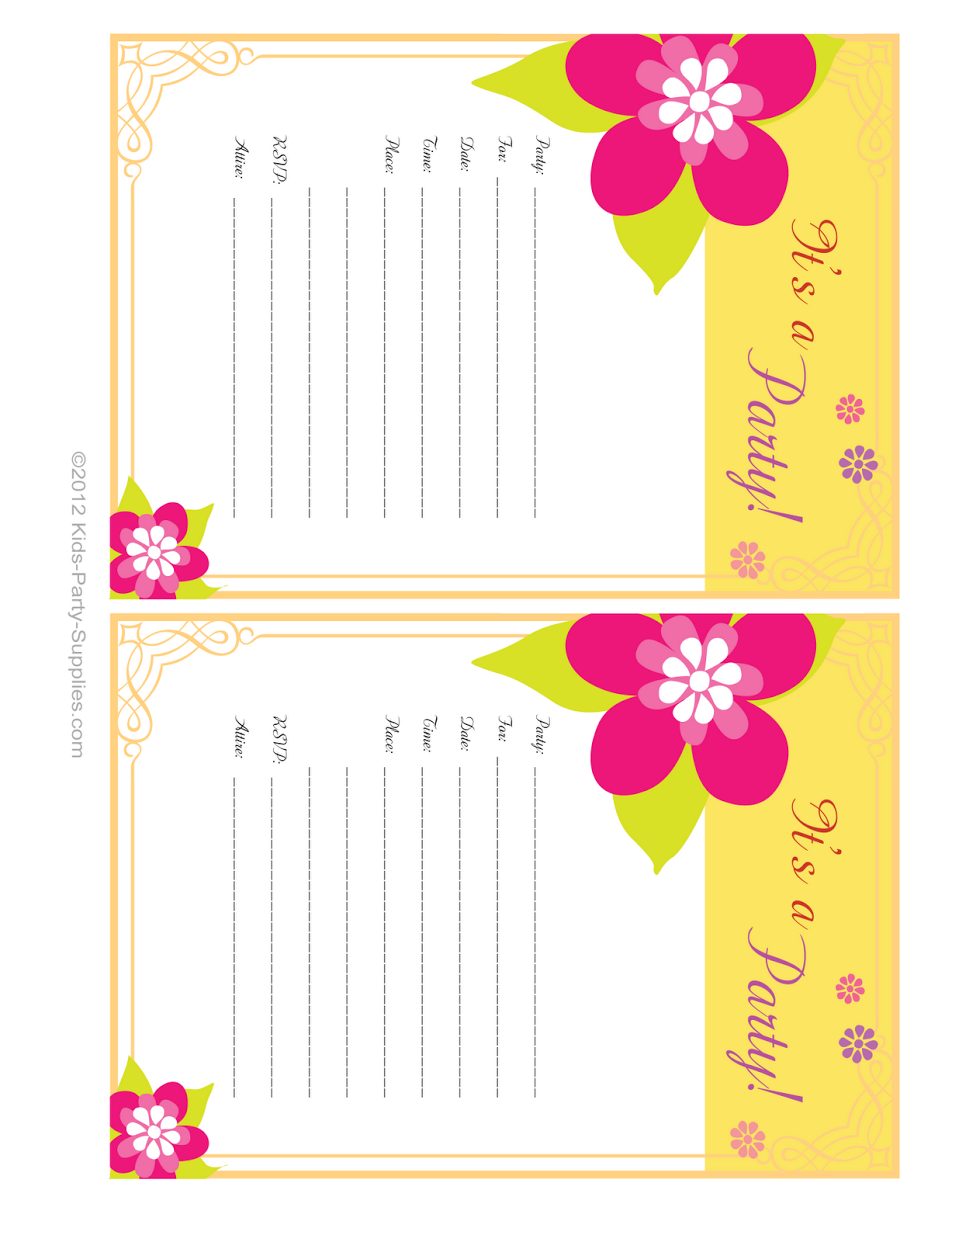 Luau Party Invitations Free Printable